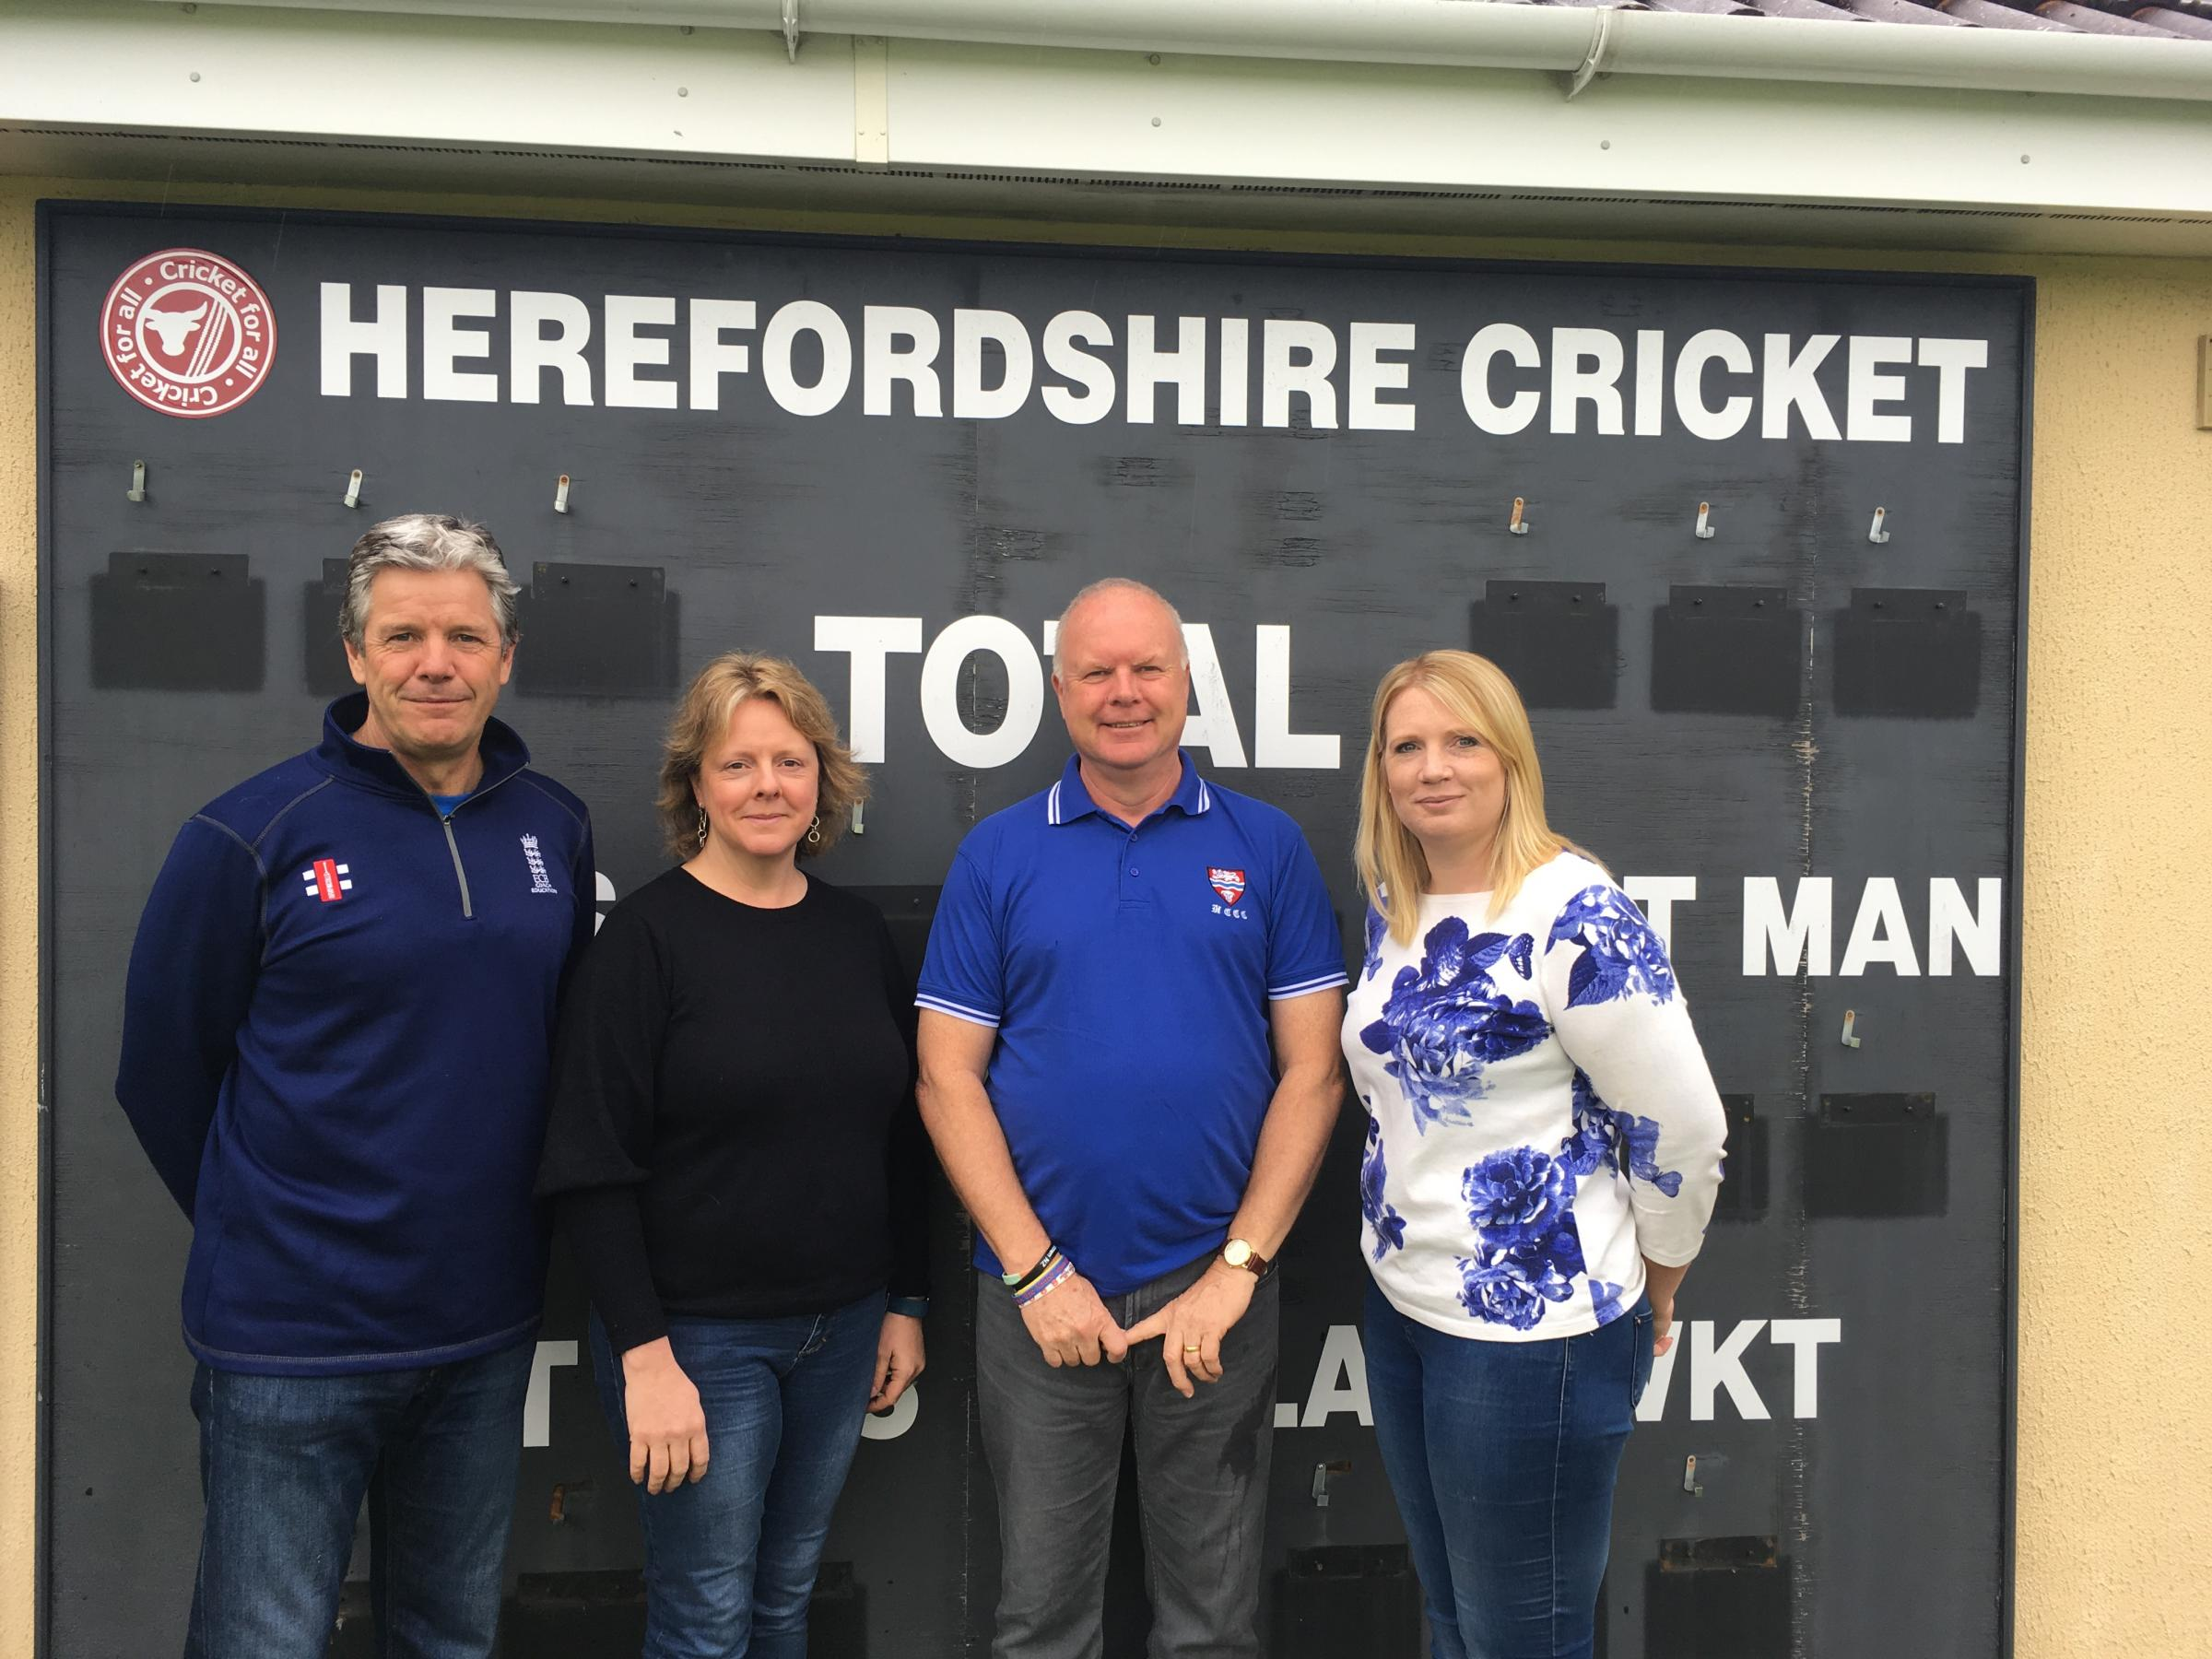 The members of staff at Herefordshire Cricket (l-r)